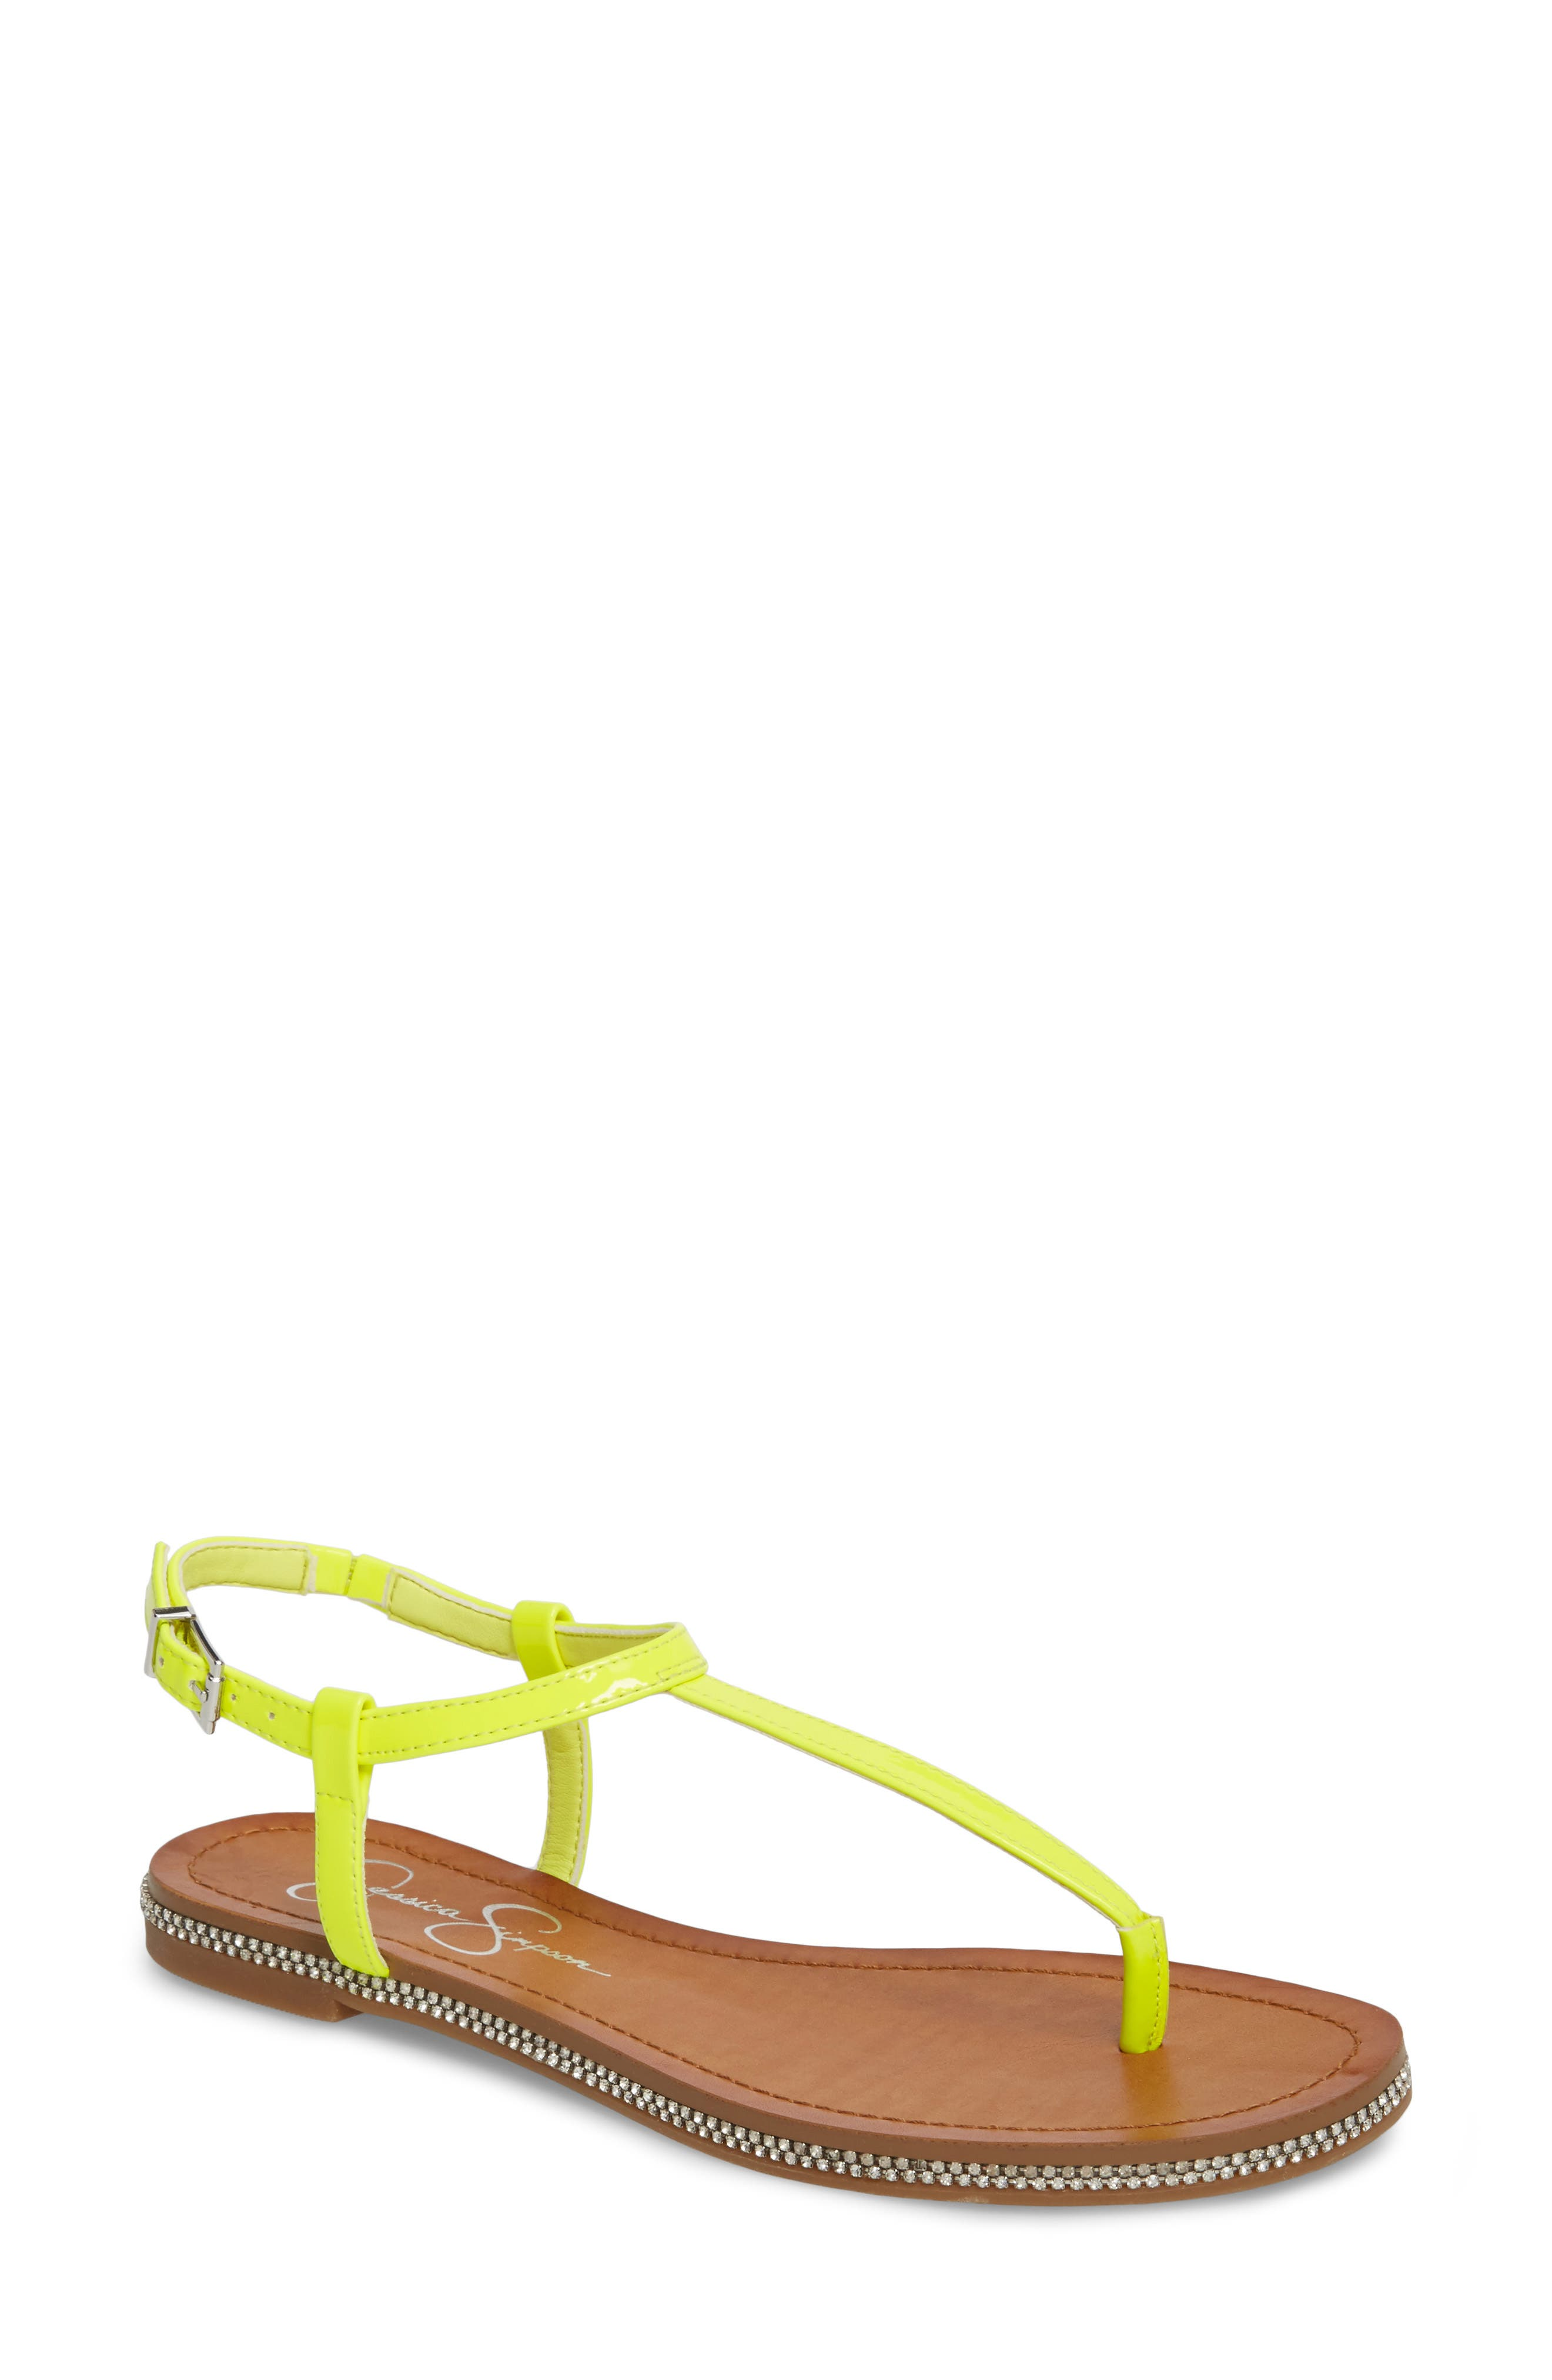 Brimah Sandal,                             Main thumbnail 1, color,                             Yellow Shock